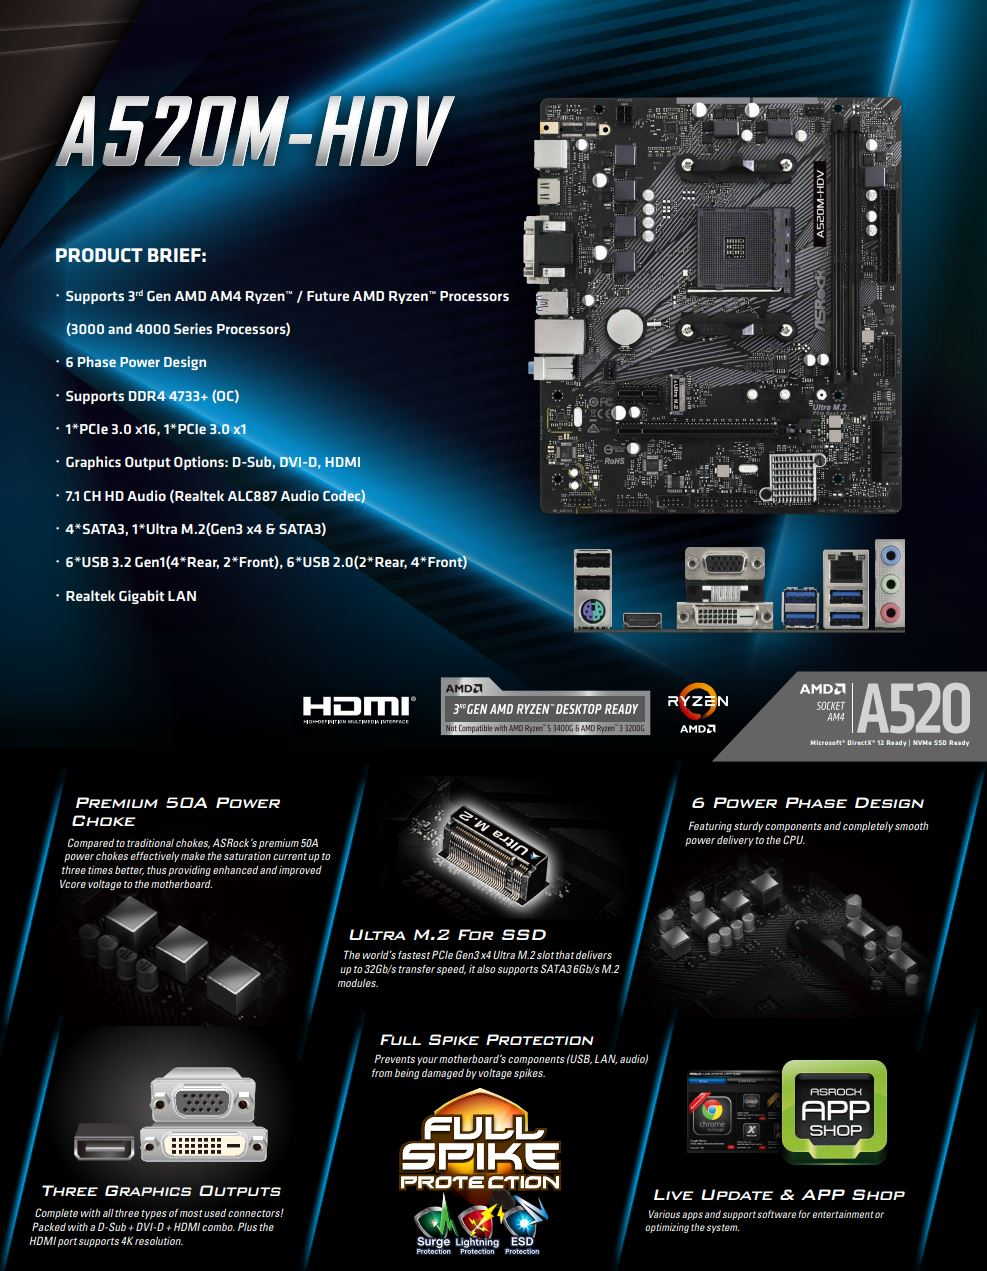 A large marketing image providing additional information about the product ASRock A520M HDV AM4 mATX Desktop Motherboard - Additional alt info not provided